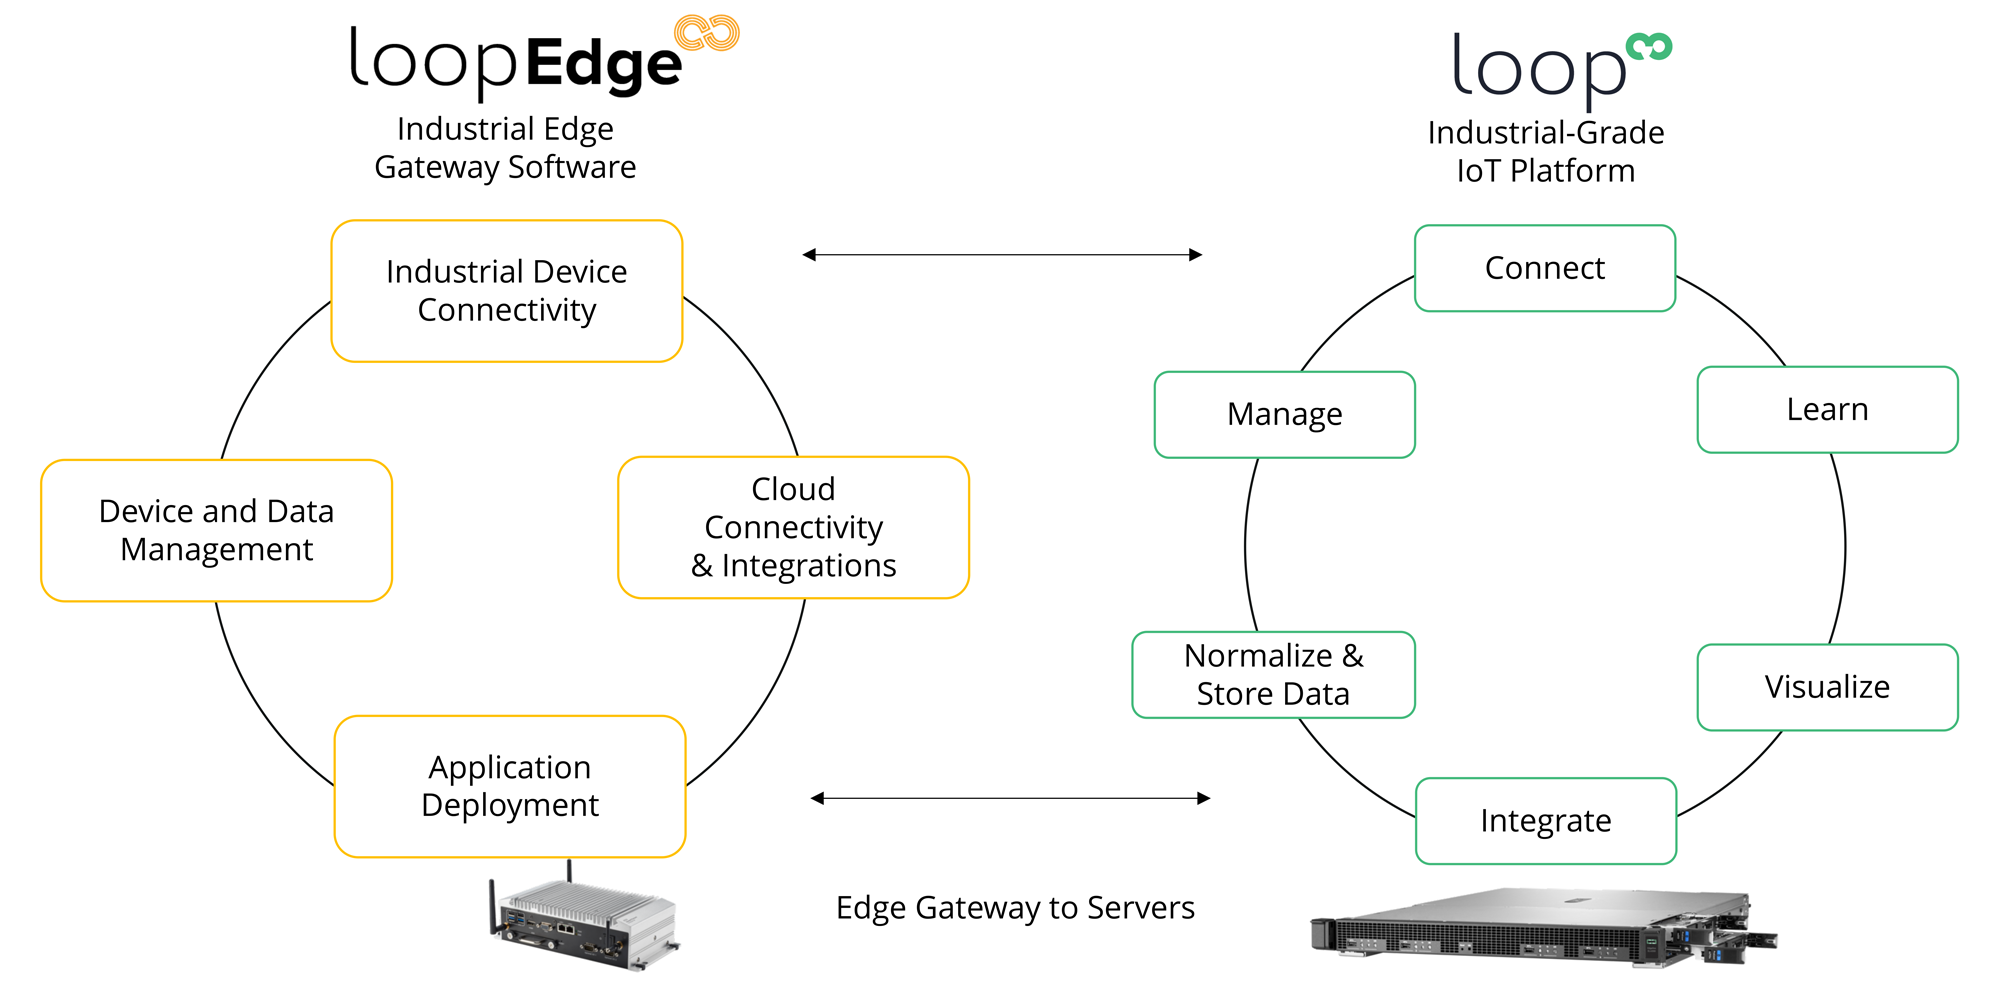 The Litmus Automation Solution provides seamless edge computing and cloud management